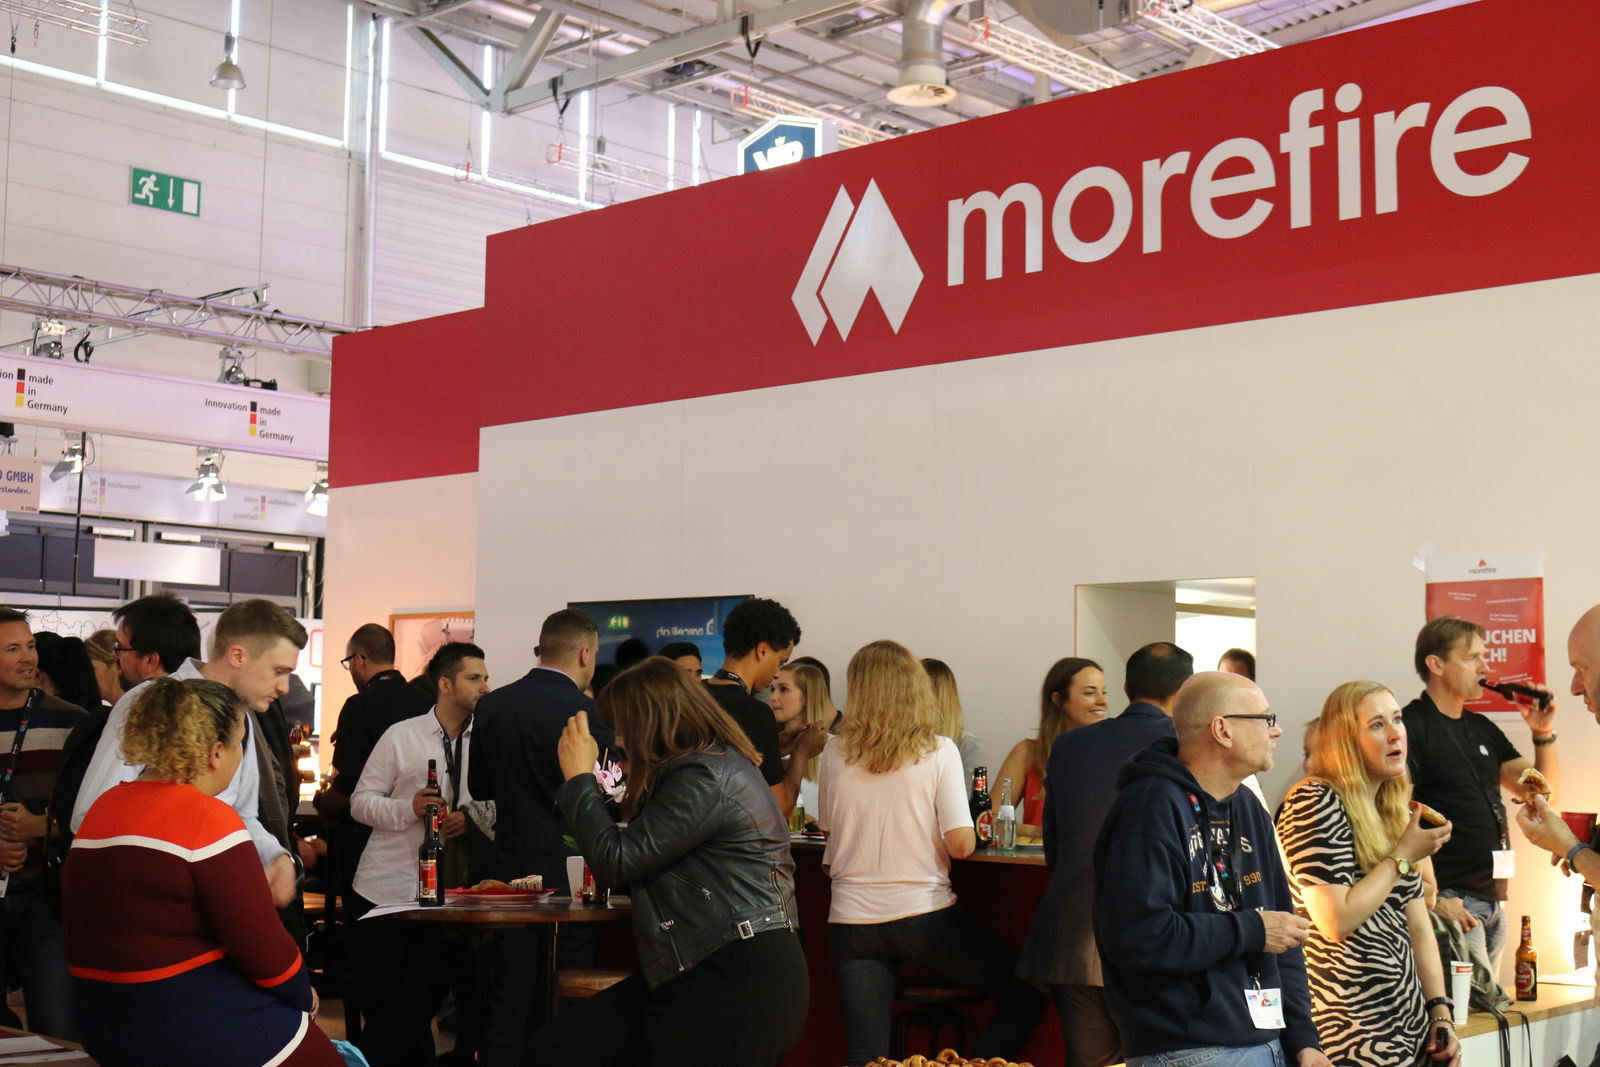 International Account Director (m/w/d) - Job Köln - Deine Karriere bei morefire